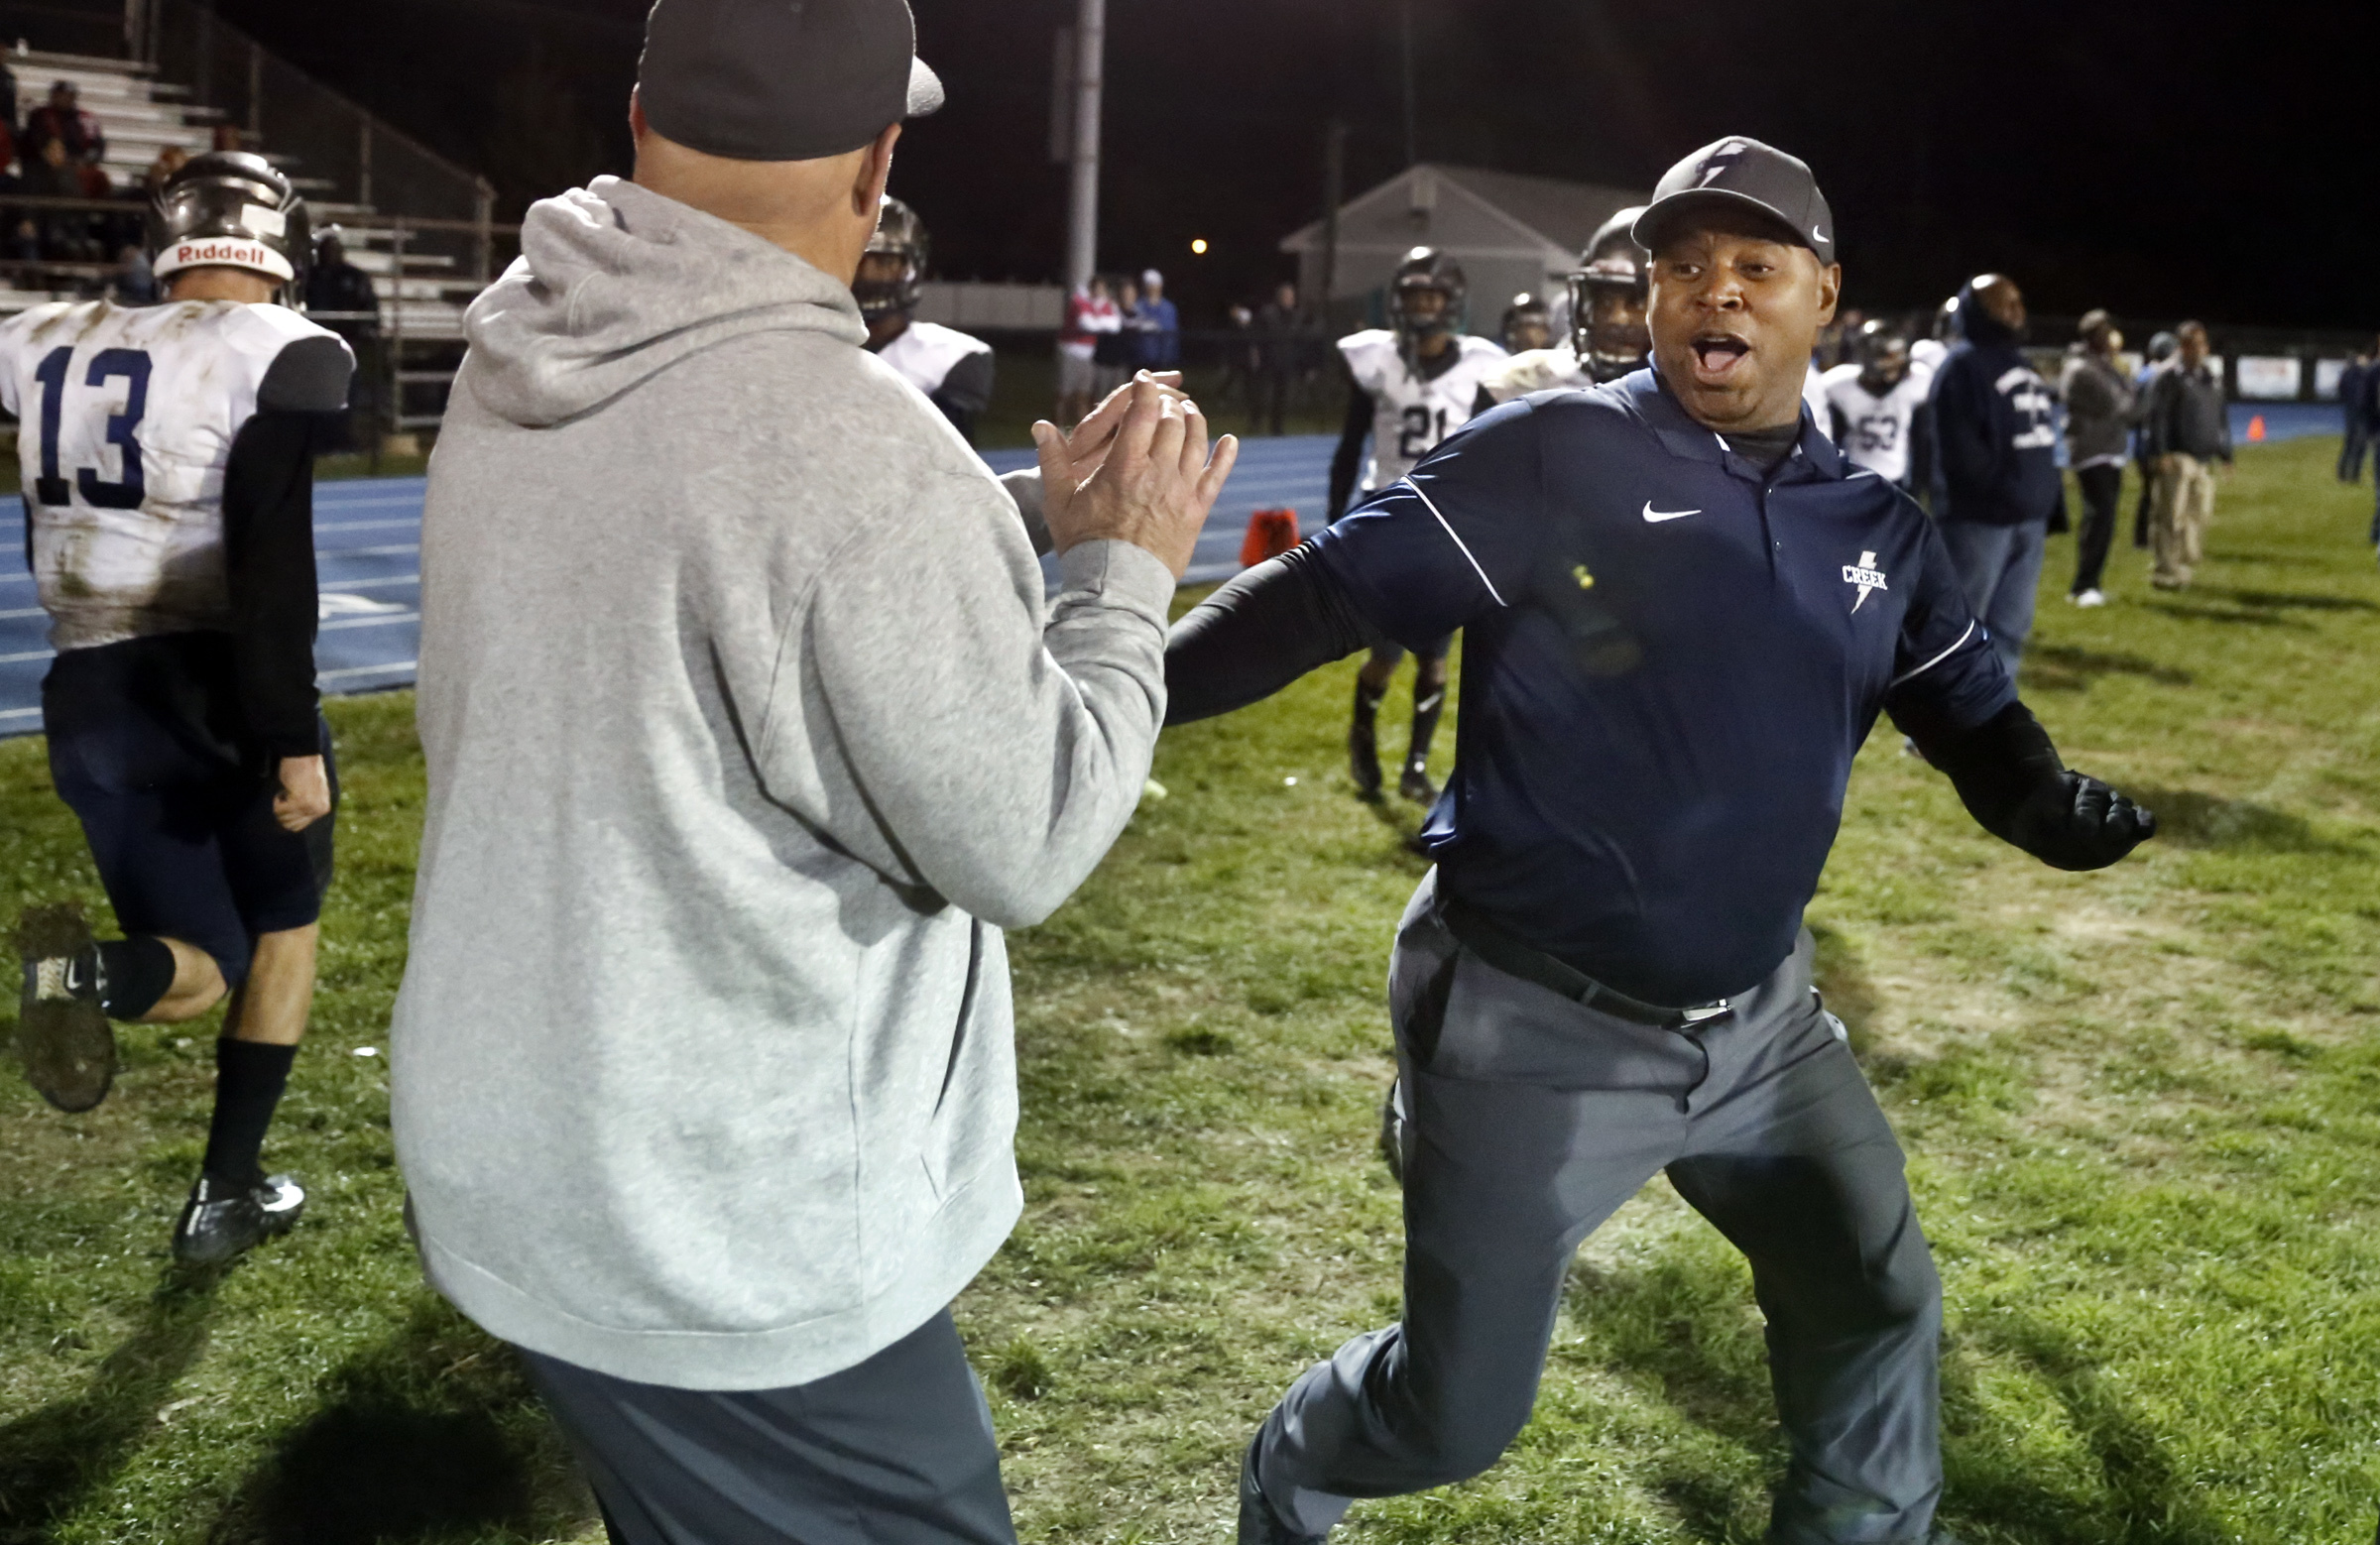 Timber Creek head coach Rob Hinson has a 103-32 record in 12 seasons with the Chargers.